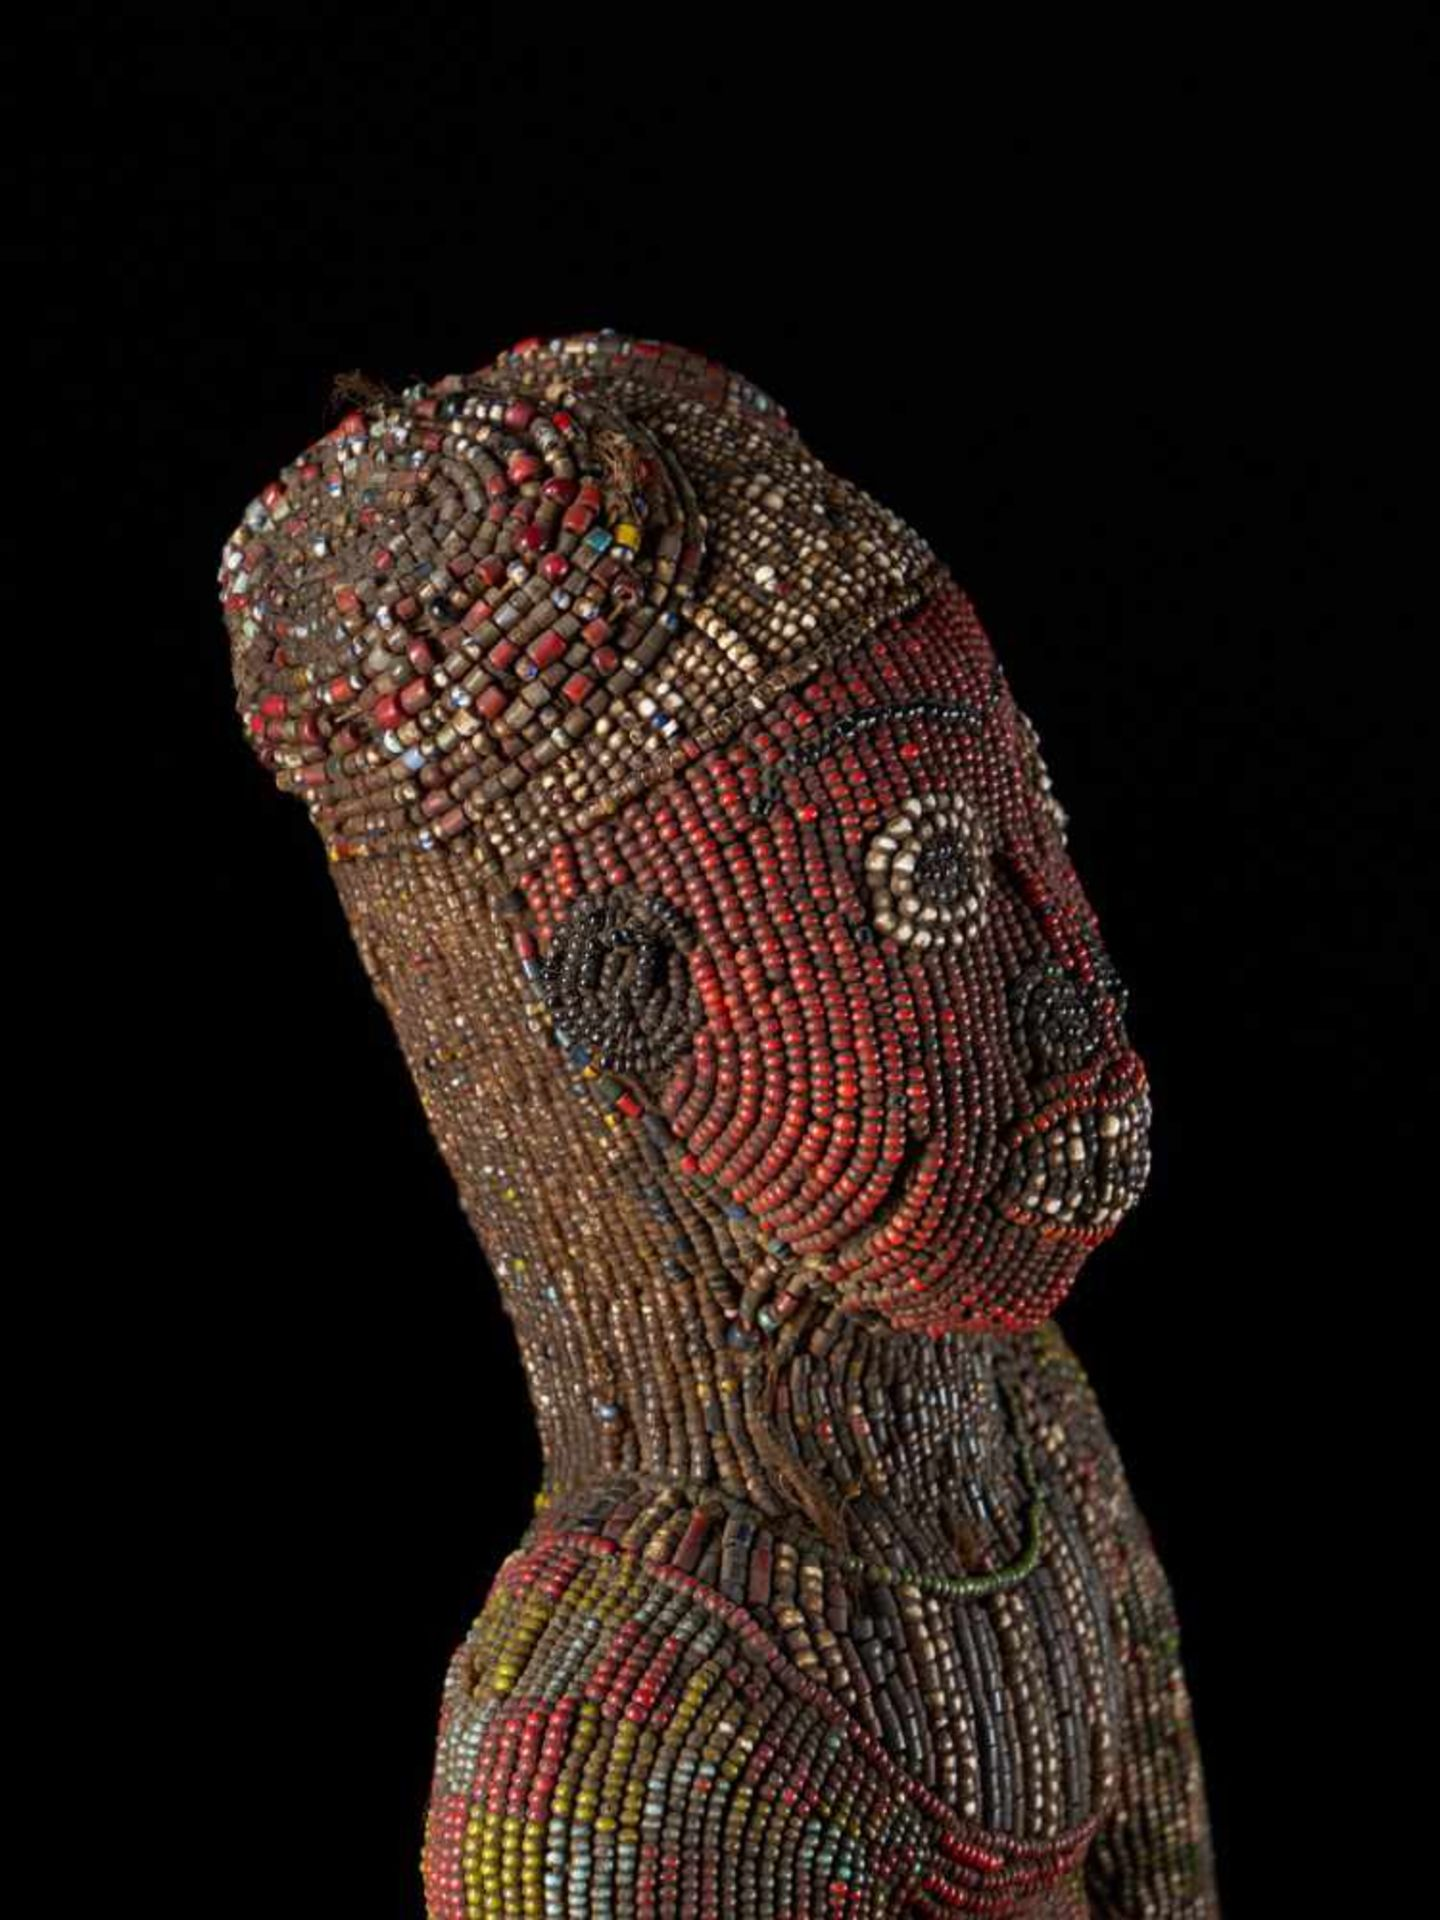 Beaded Figure Of Cupholder - Tribal ArtA beaded figure of a man sitting on a stool, holding a cup. - Bild 6 aus 6